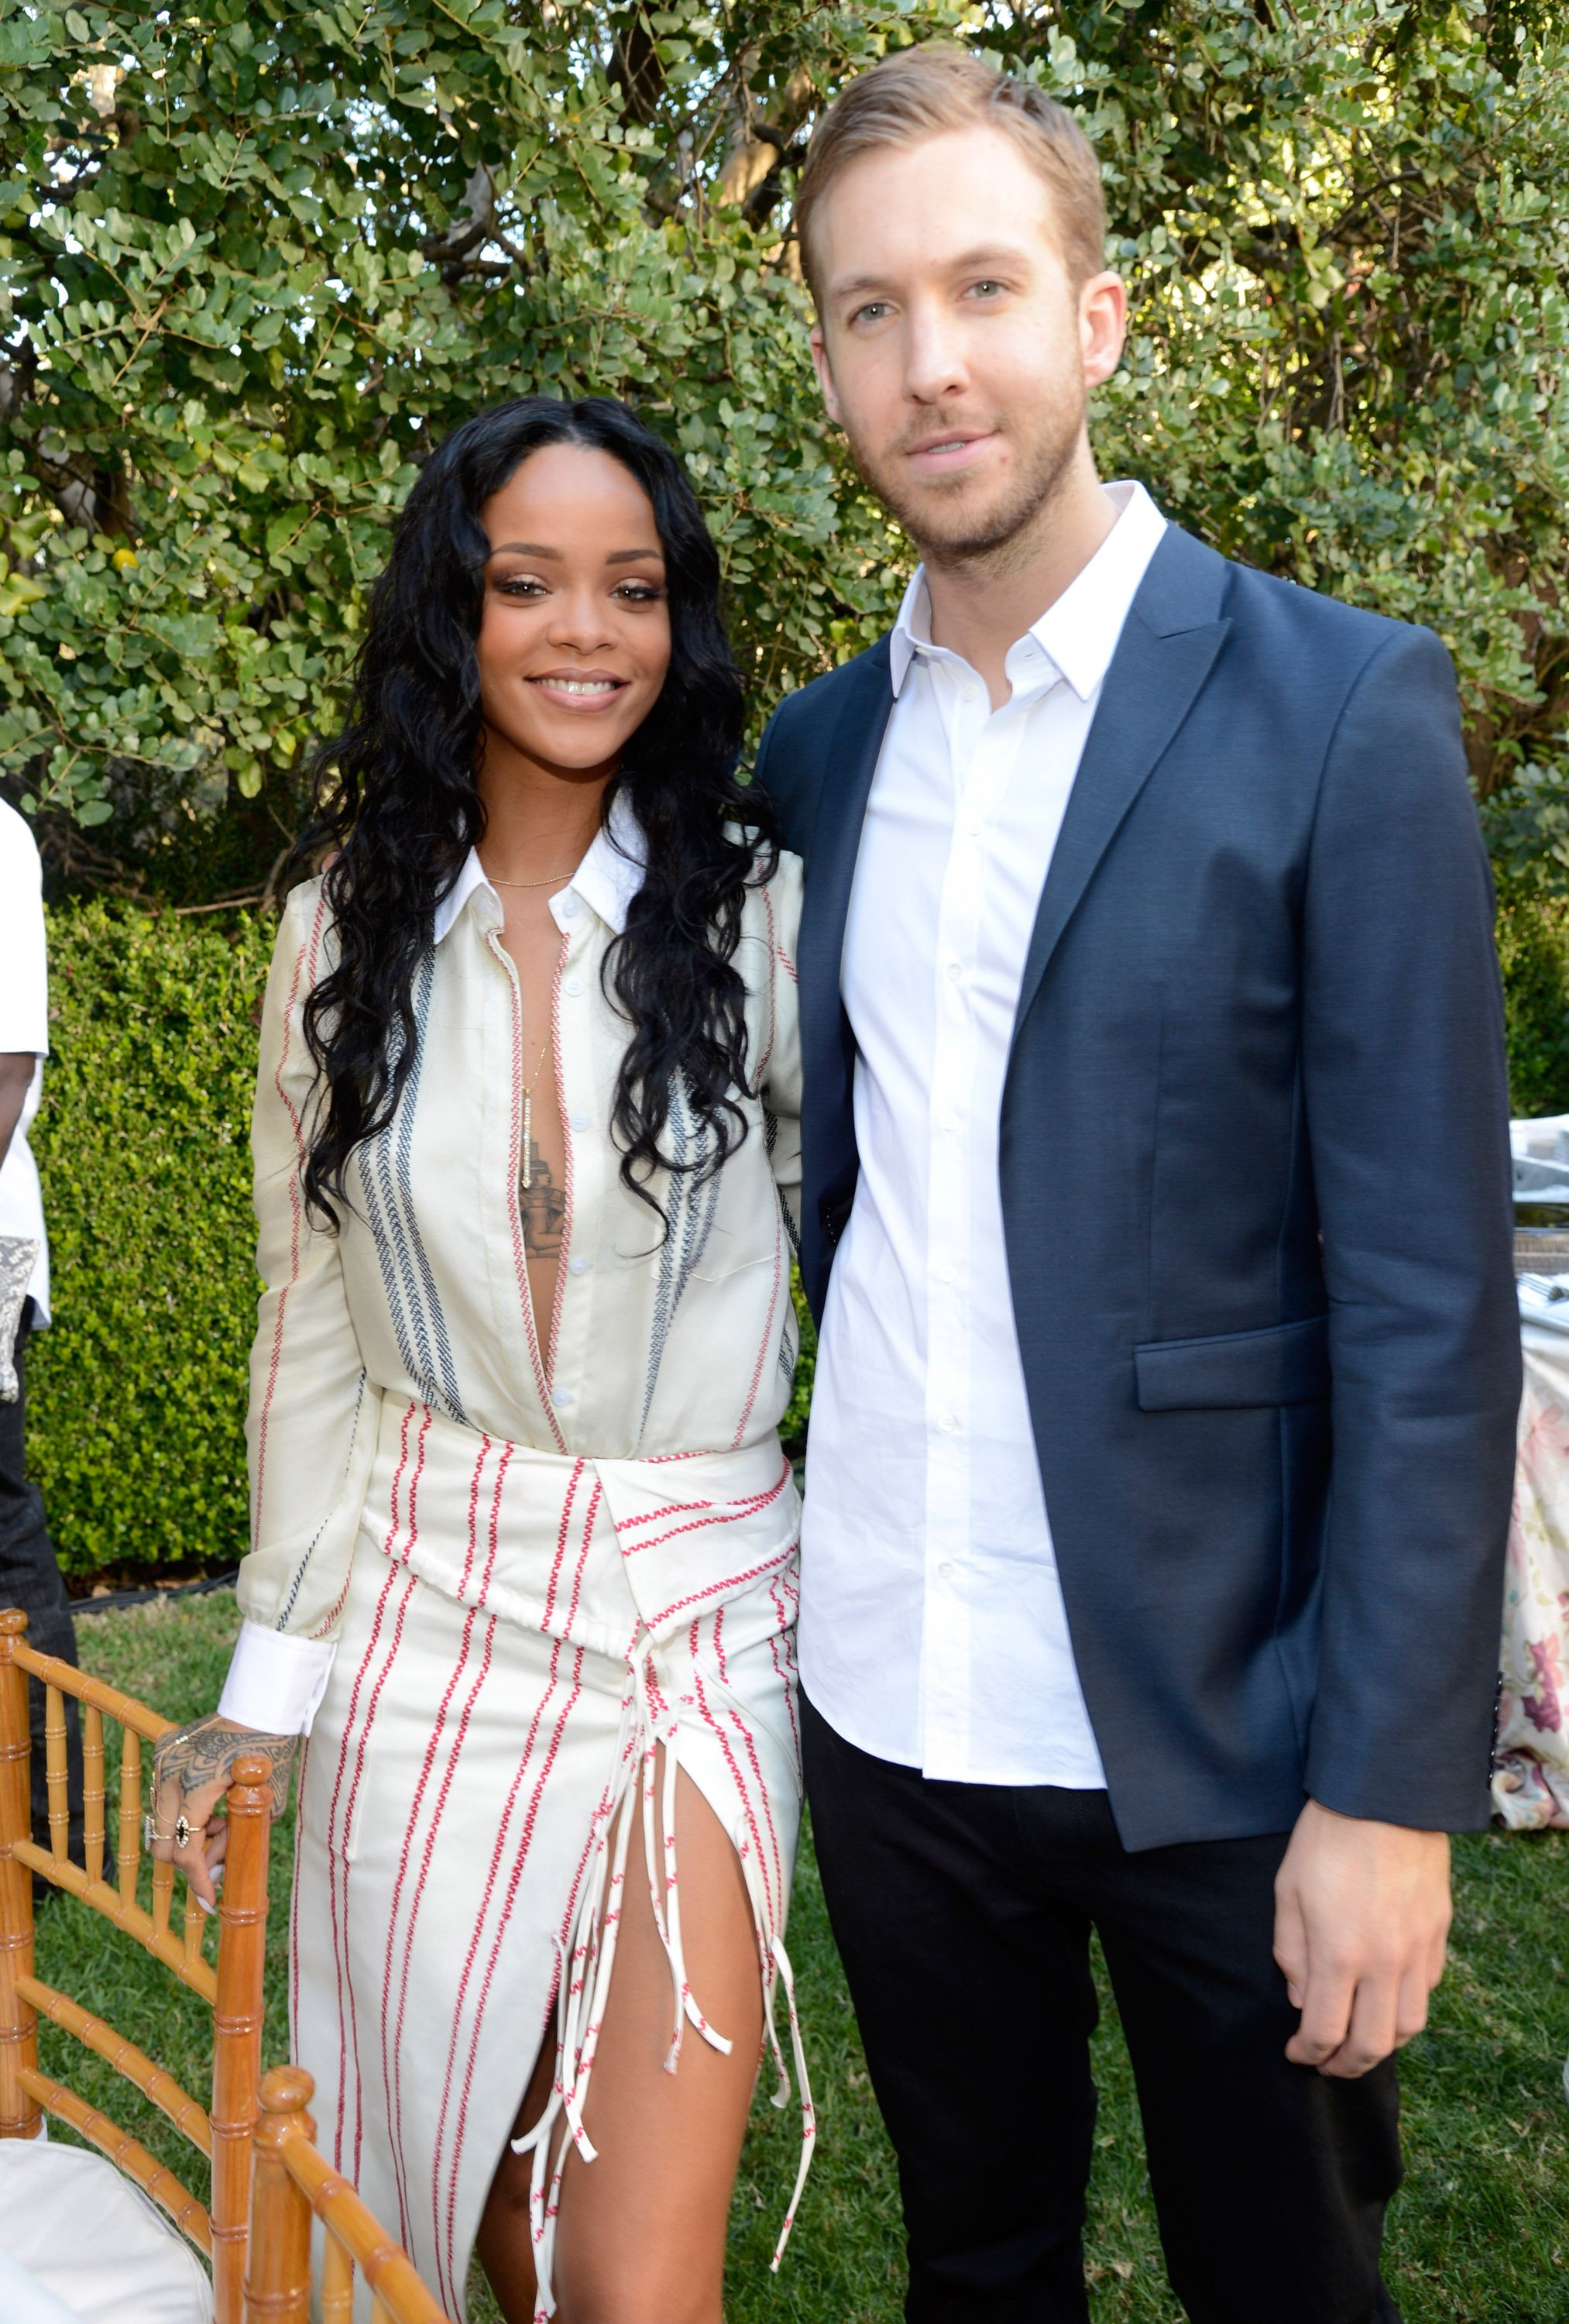 Rihanna and Calvin Harris attend the Roc Nation Pre-GRAMMY Brunch presented by MAC Viva Glam at Private Residence on January 25, 2014 in Beverly Hills